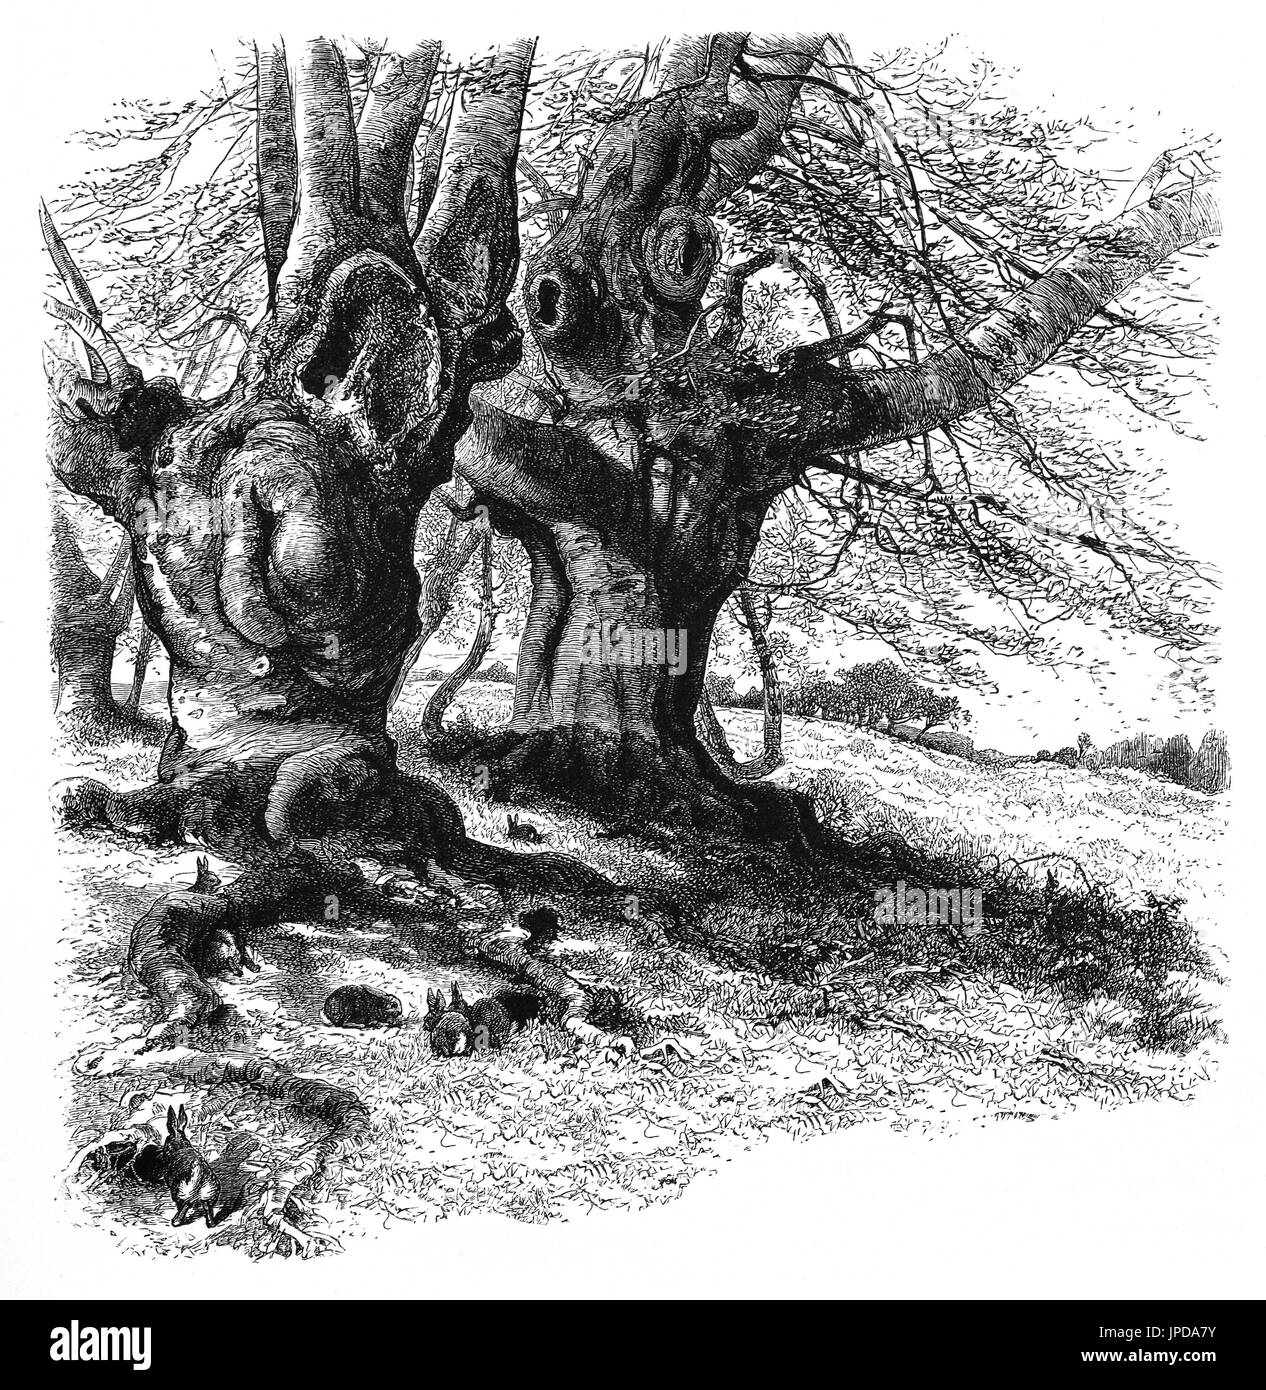 1870: Rabbits in Burnham Beeches, to the west of Farnham Common in Burnham, Buckinghamshire, England. Open to the public it is now  a Site of Special Scientific Interest, a National Nature Reserve and a Special Area of Conservation. - Stock Image